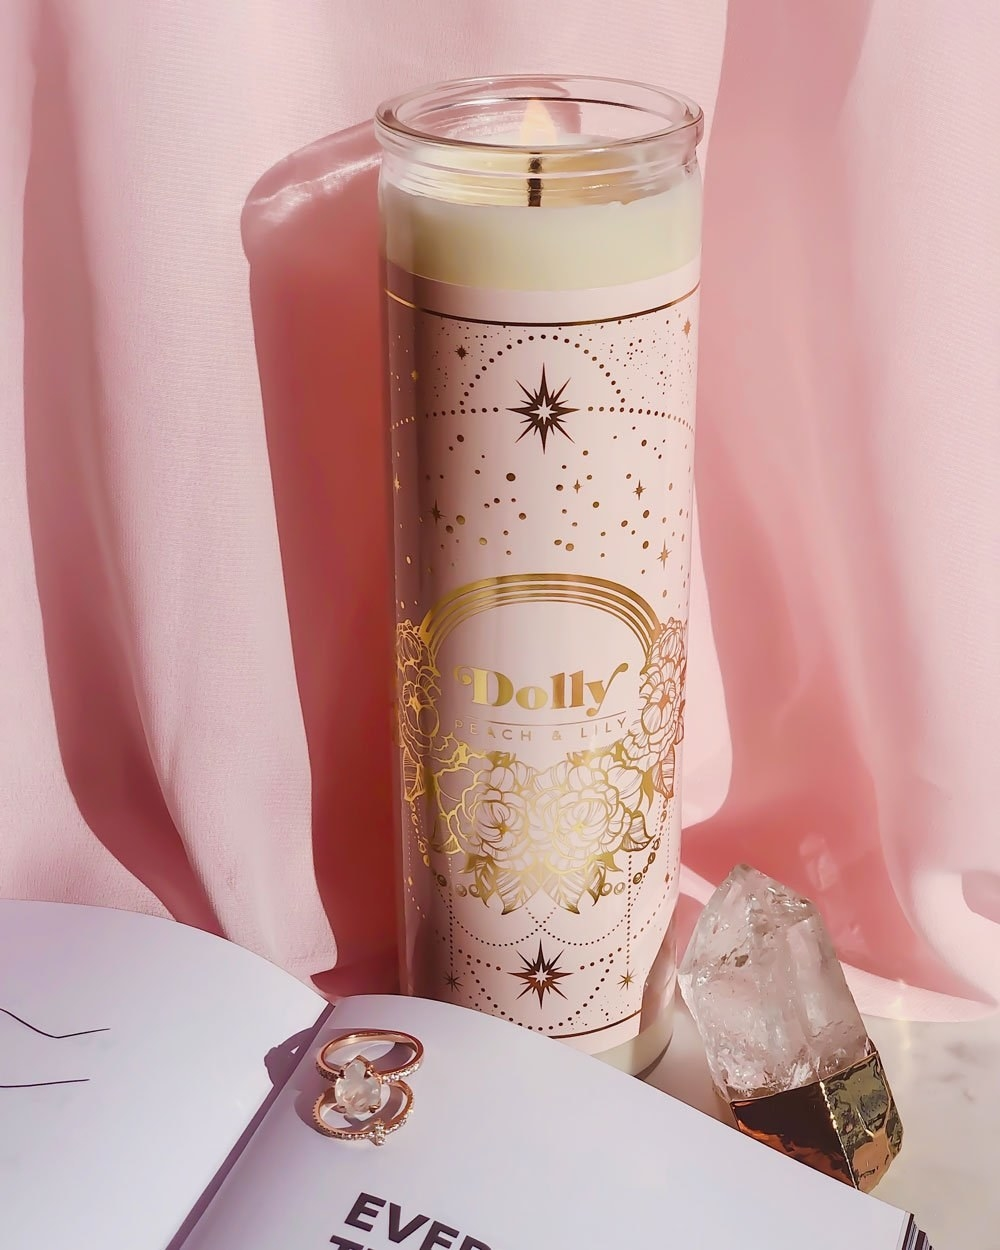 tall peach and lily candle